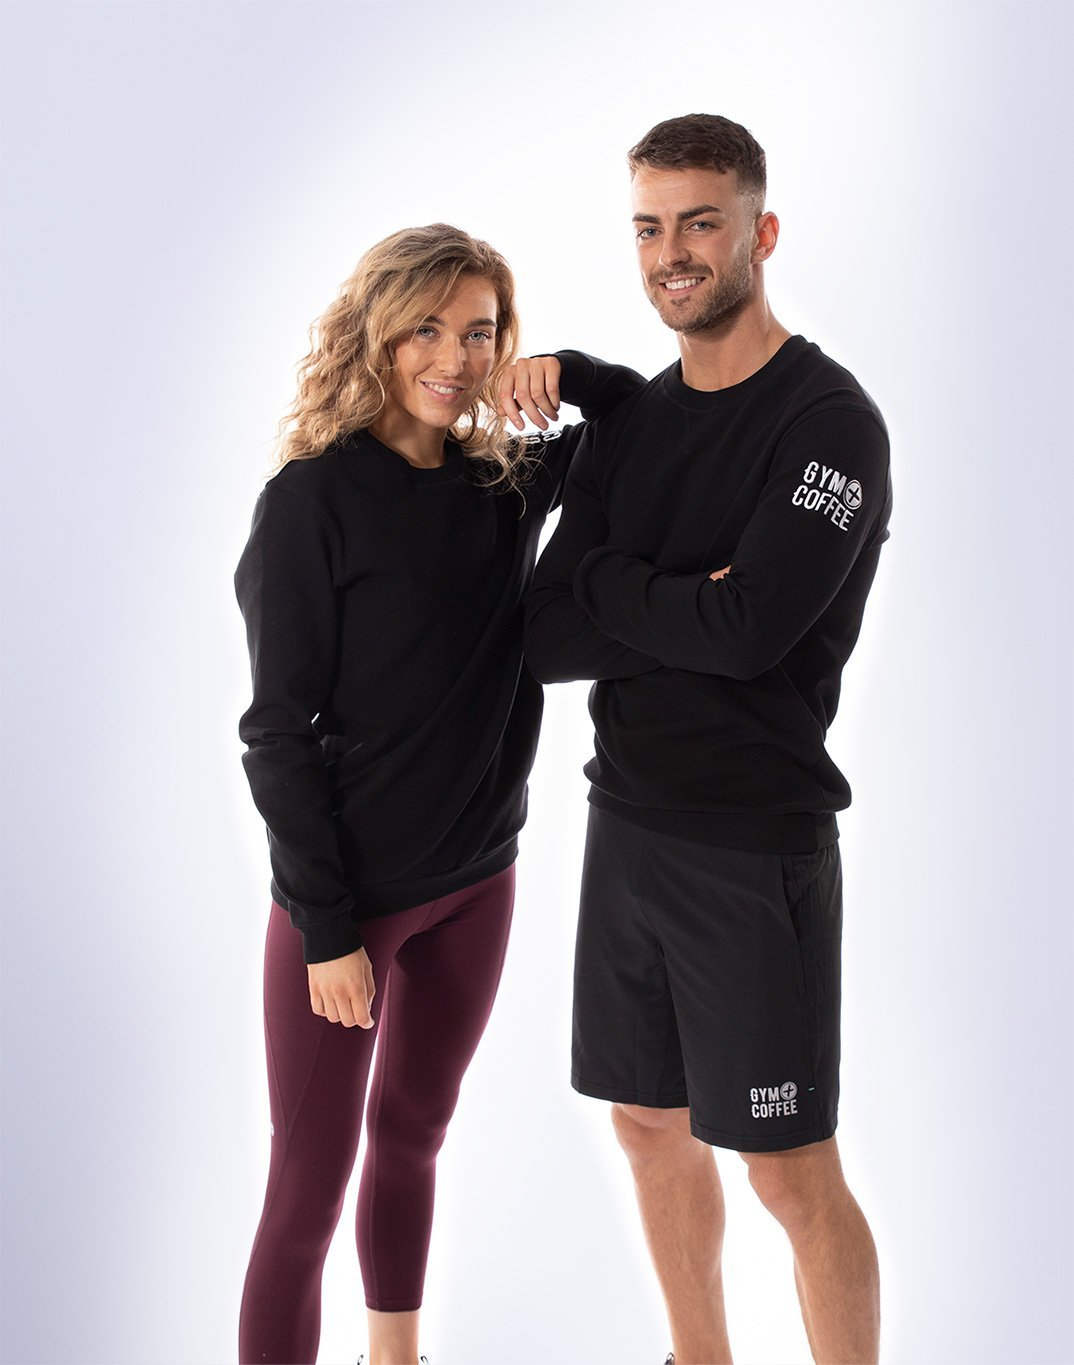 Gym Plus Coffee Long Sleeve UniCrew in Black Designed in Ireland